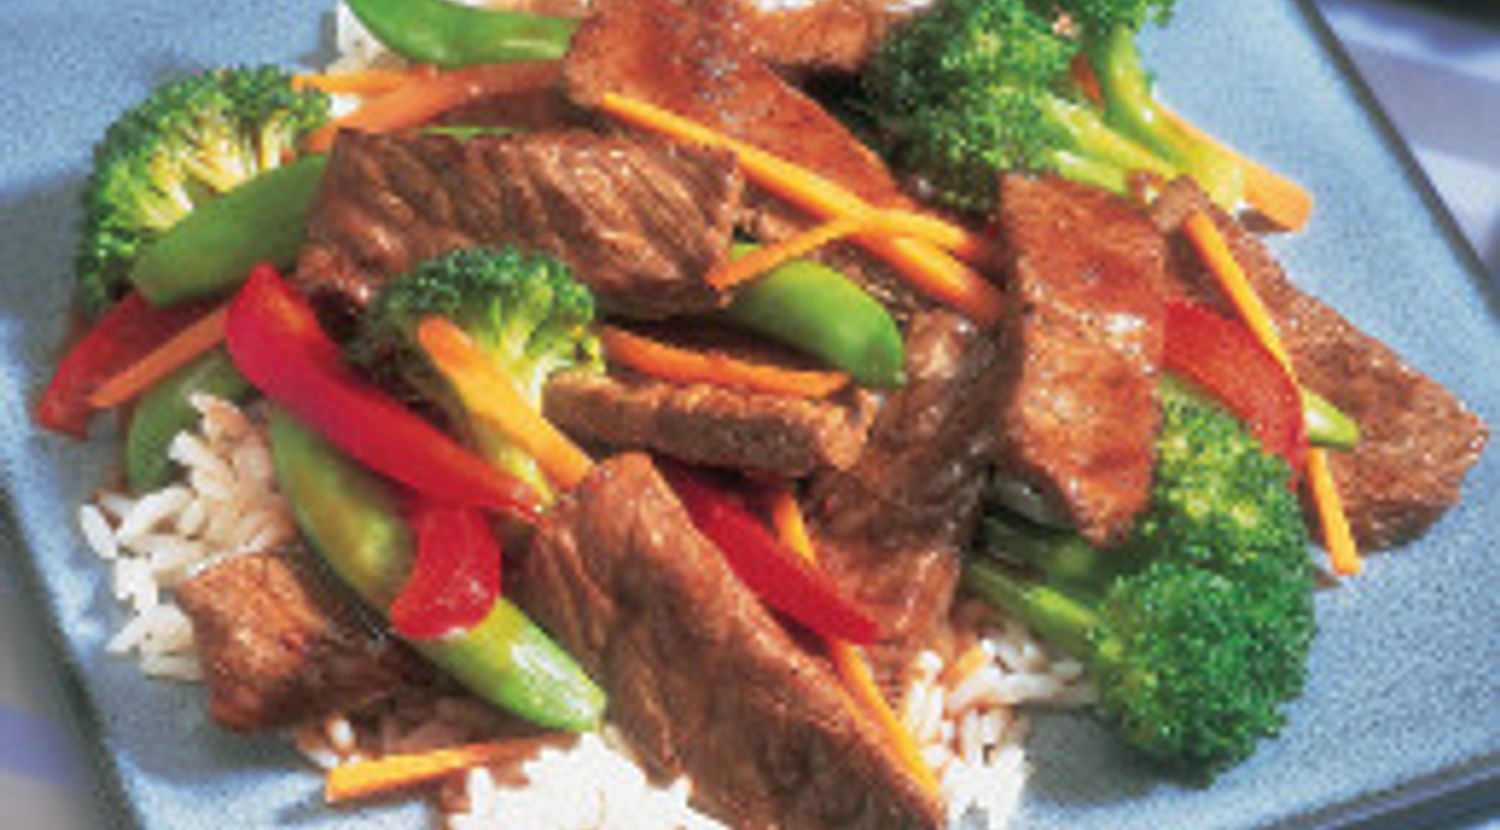 Sizzling Asian Stir-Fry